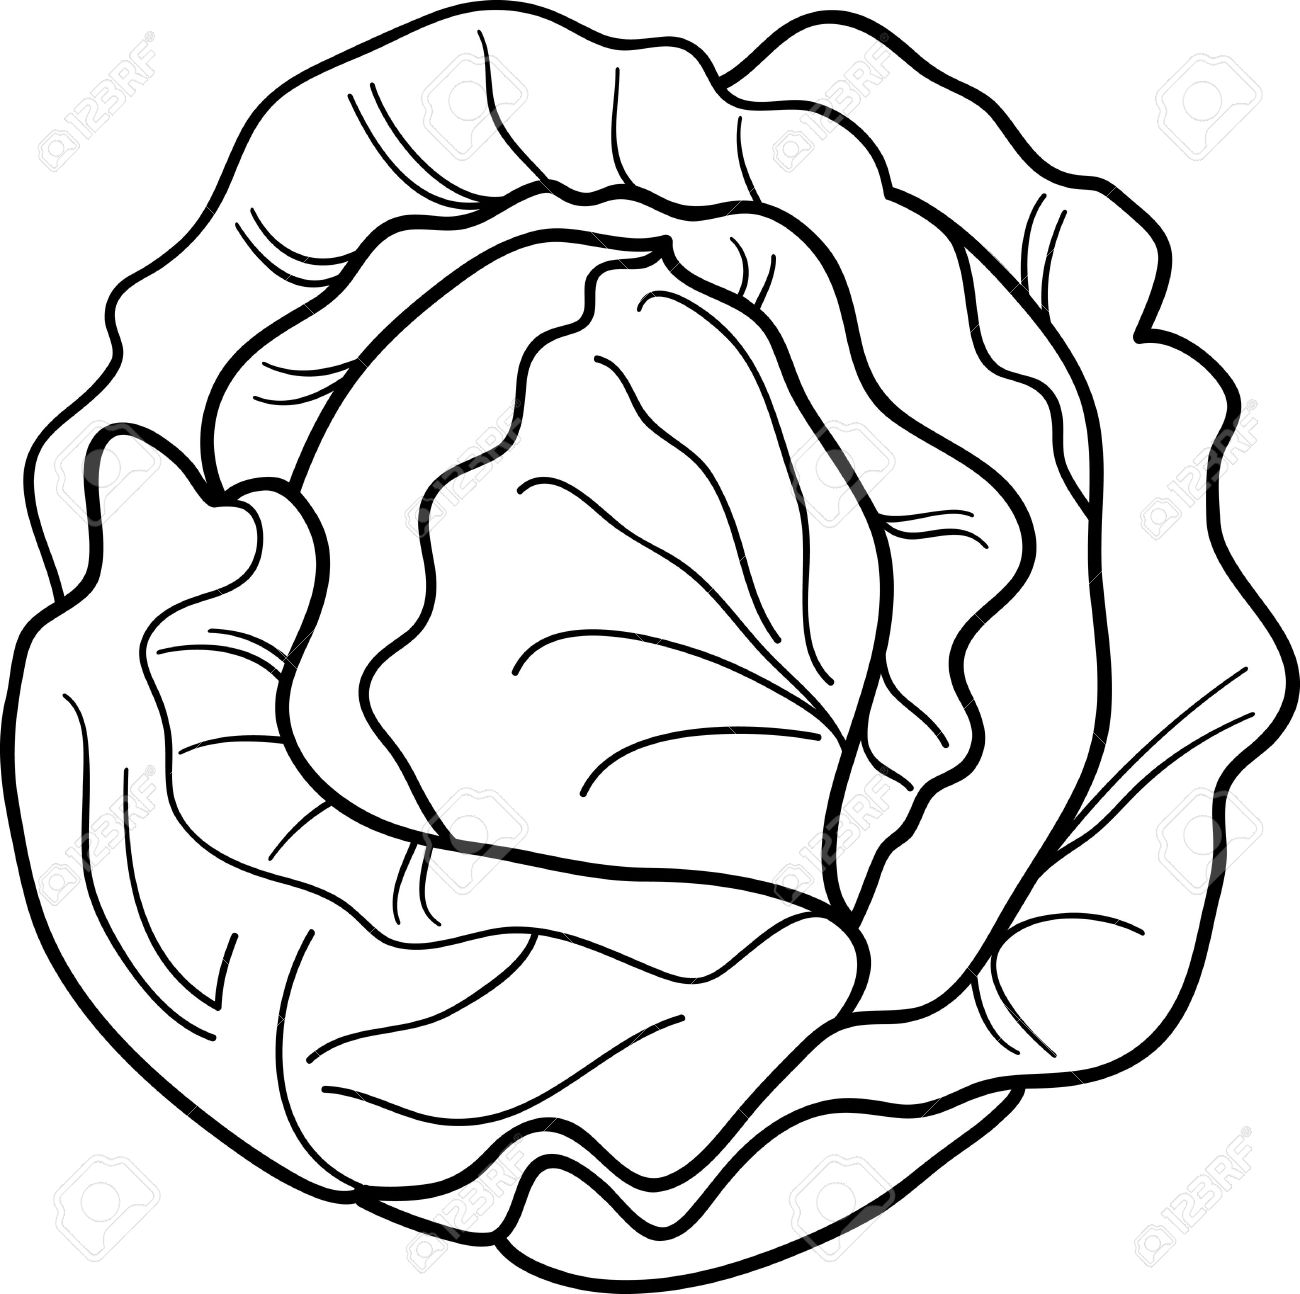 Cabbage clipart black and white 1 » Clipart Station.